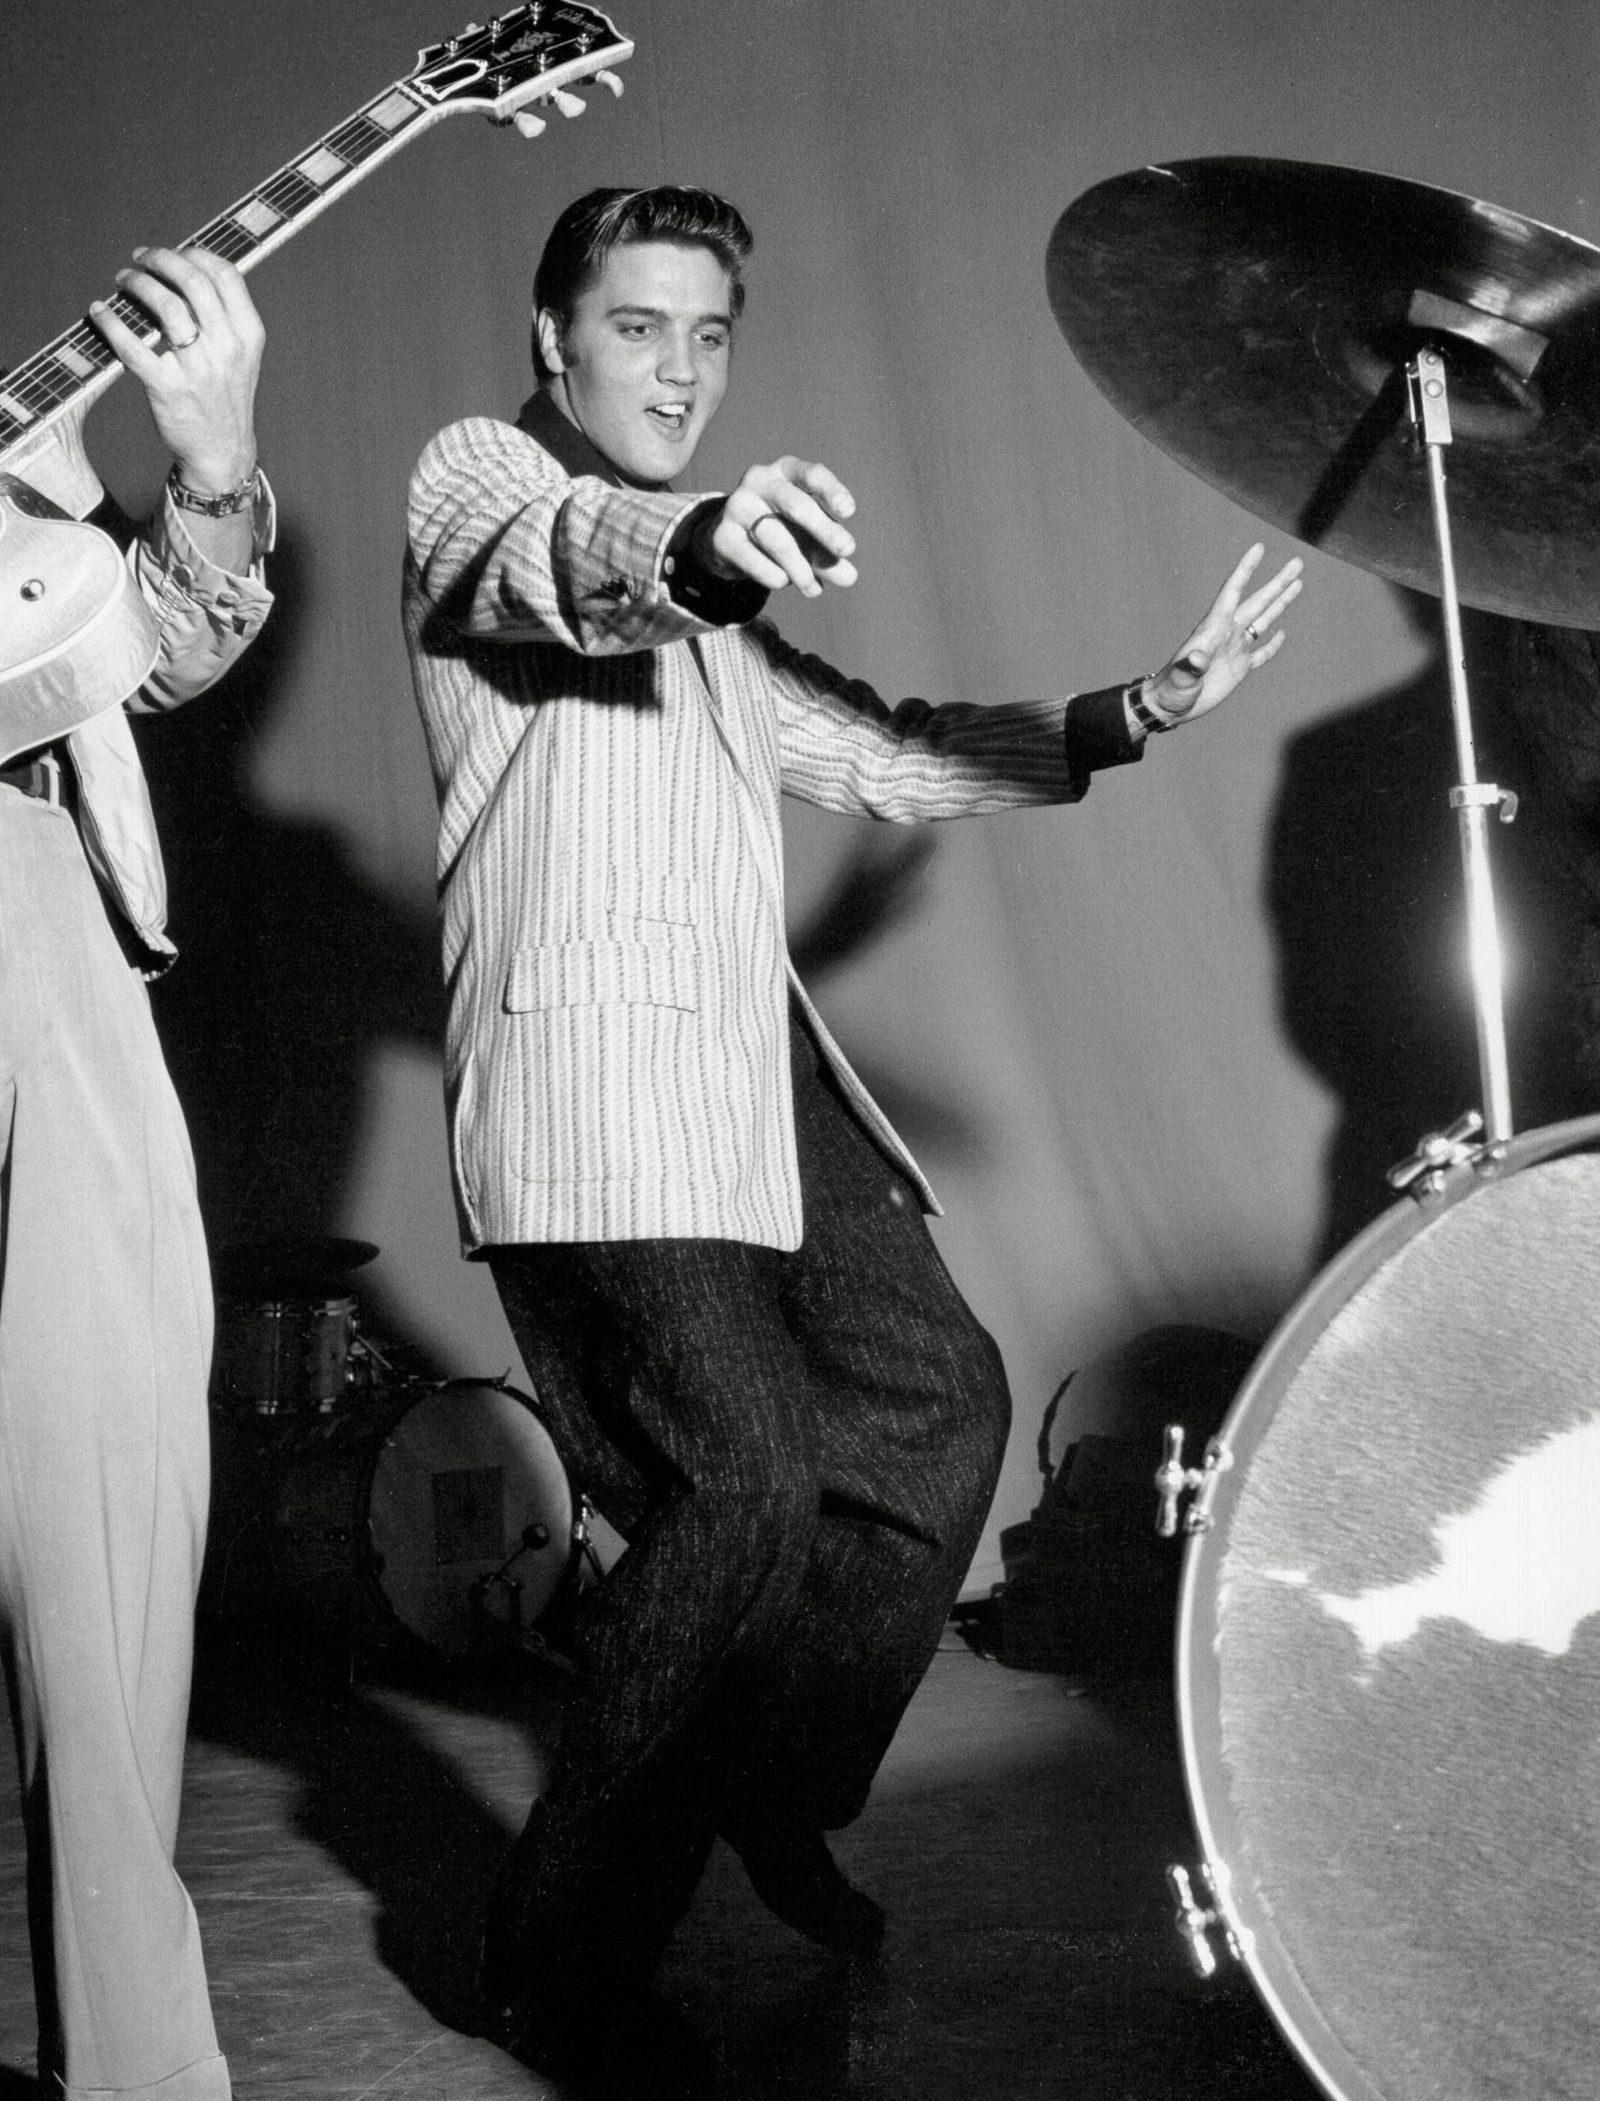 Elvis Presley during rehearsals for one of his early TV appearances on the Milton Berle Show June 5